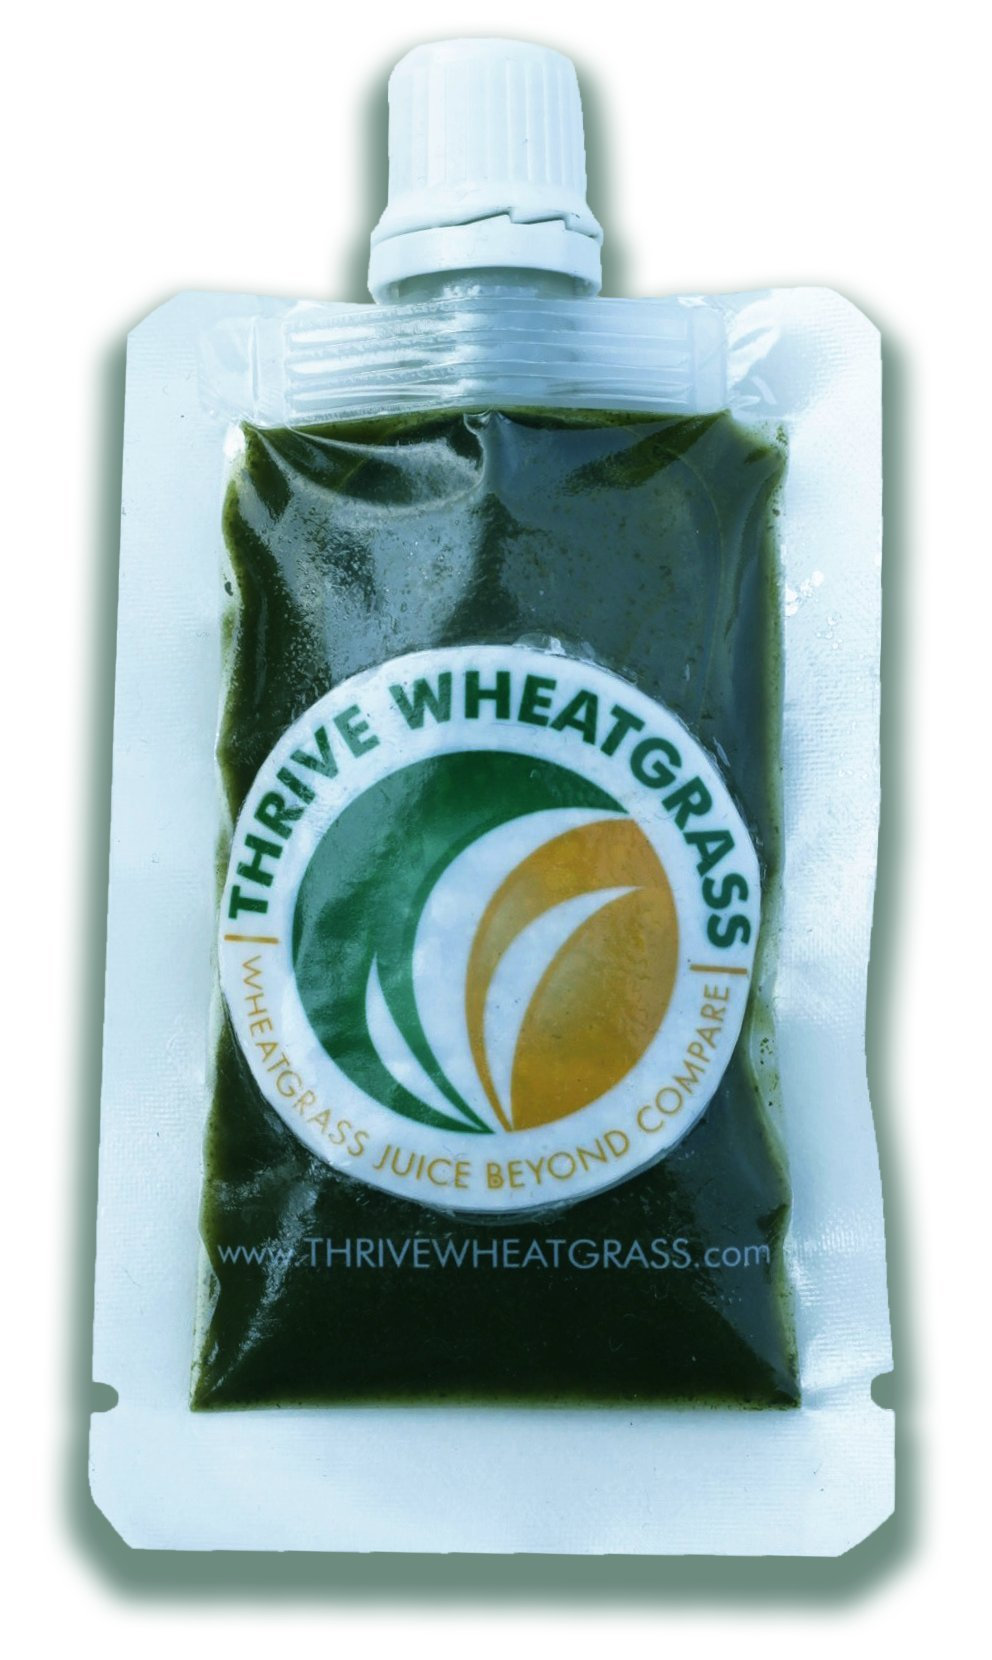 Thrive Wheatgrass Juice - 100 x 1oz Packets (100 Fl Ozs Total) - Only $1.89 Per Packet! - Field Grown - Flash Frozen - Raw and Unpasteurized - 100% Wheatgrass Juice, Not Powder! FREE 24 HOUR SHIPPING!